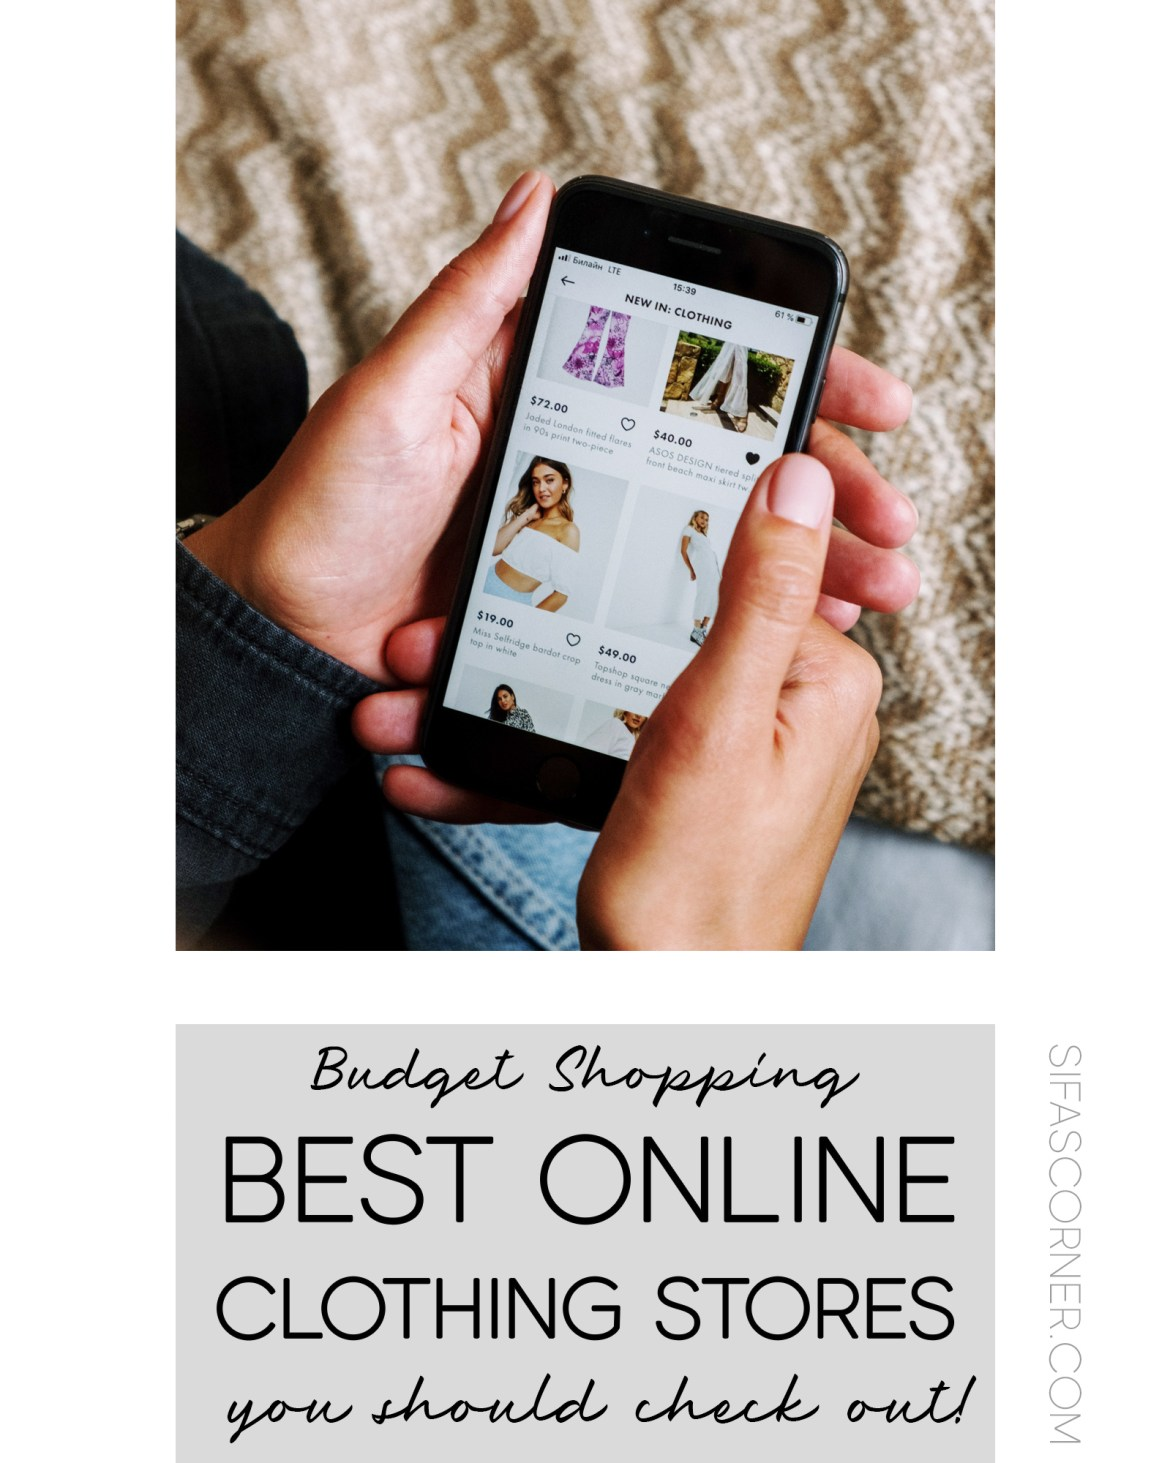 Best Online Clothing Stores for Budget Shopping